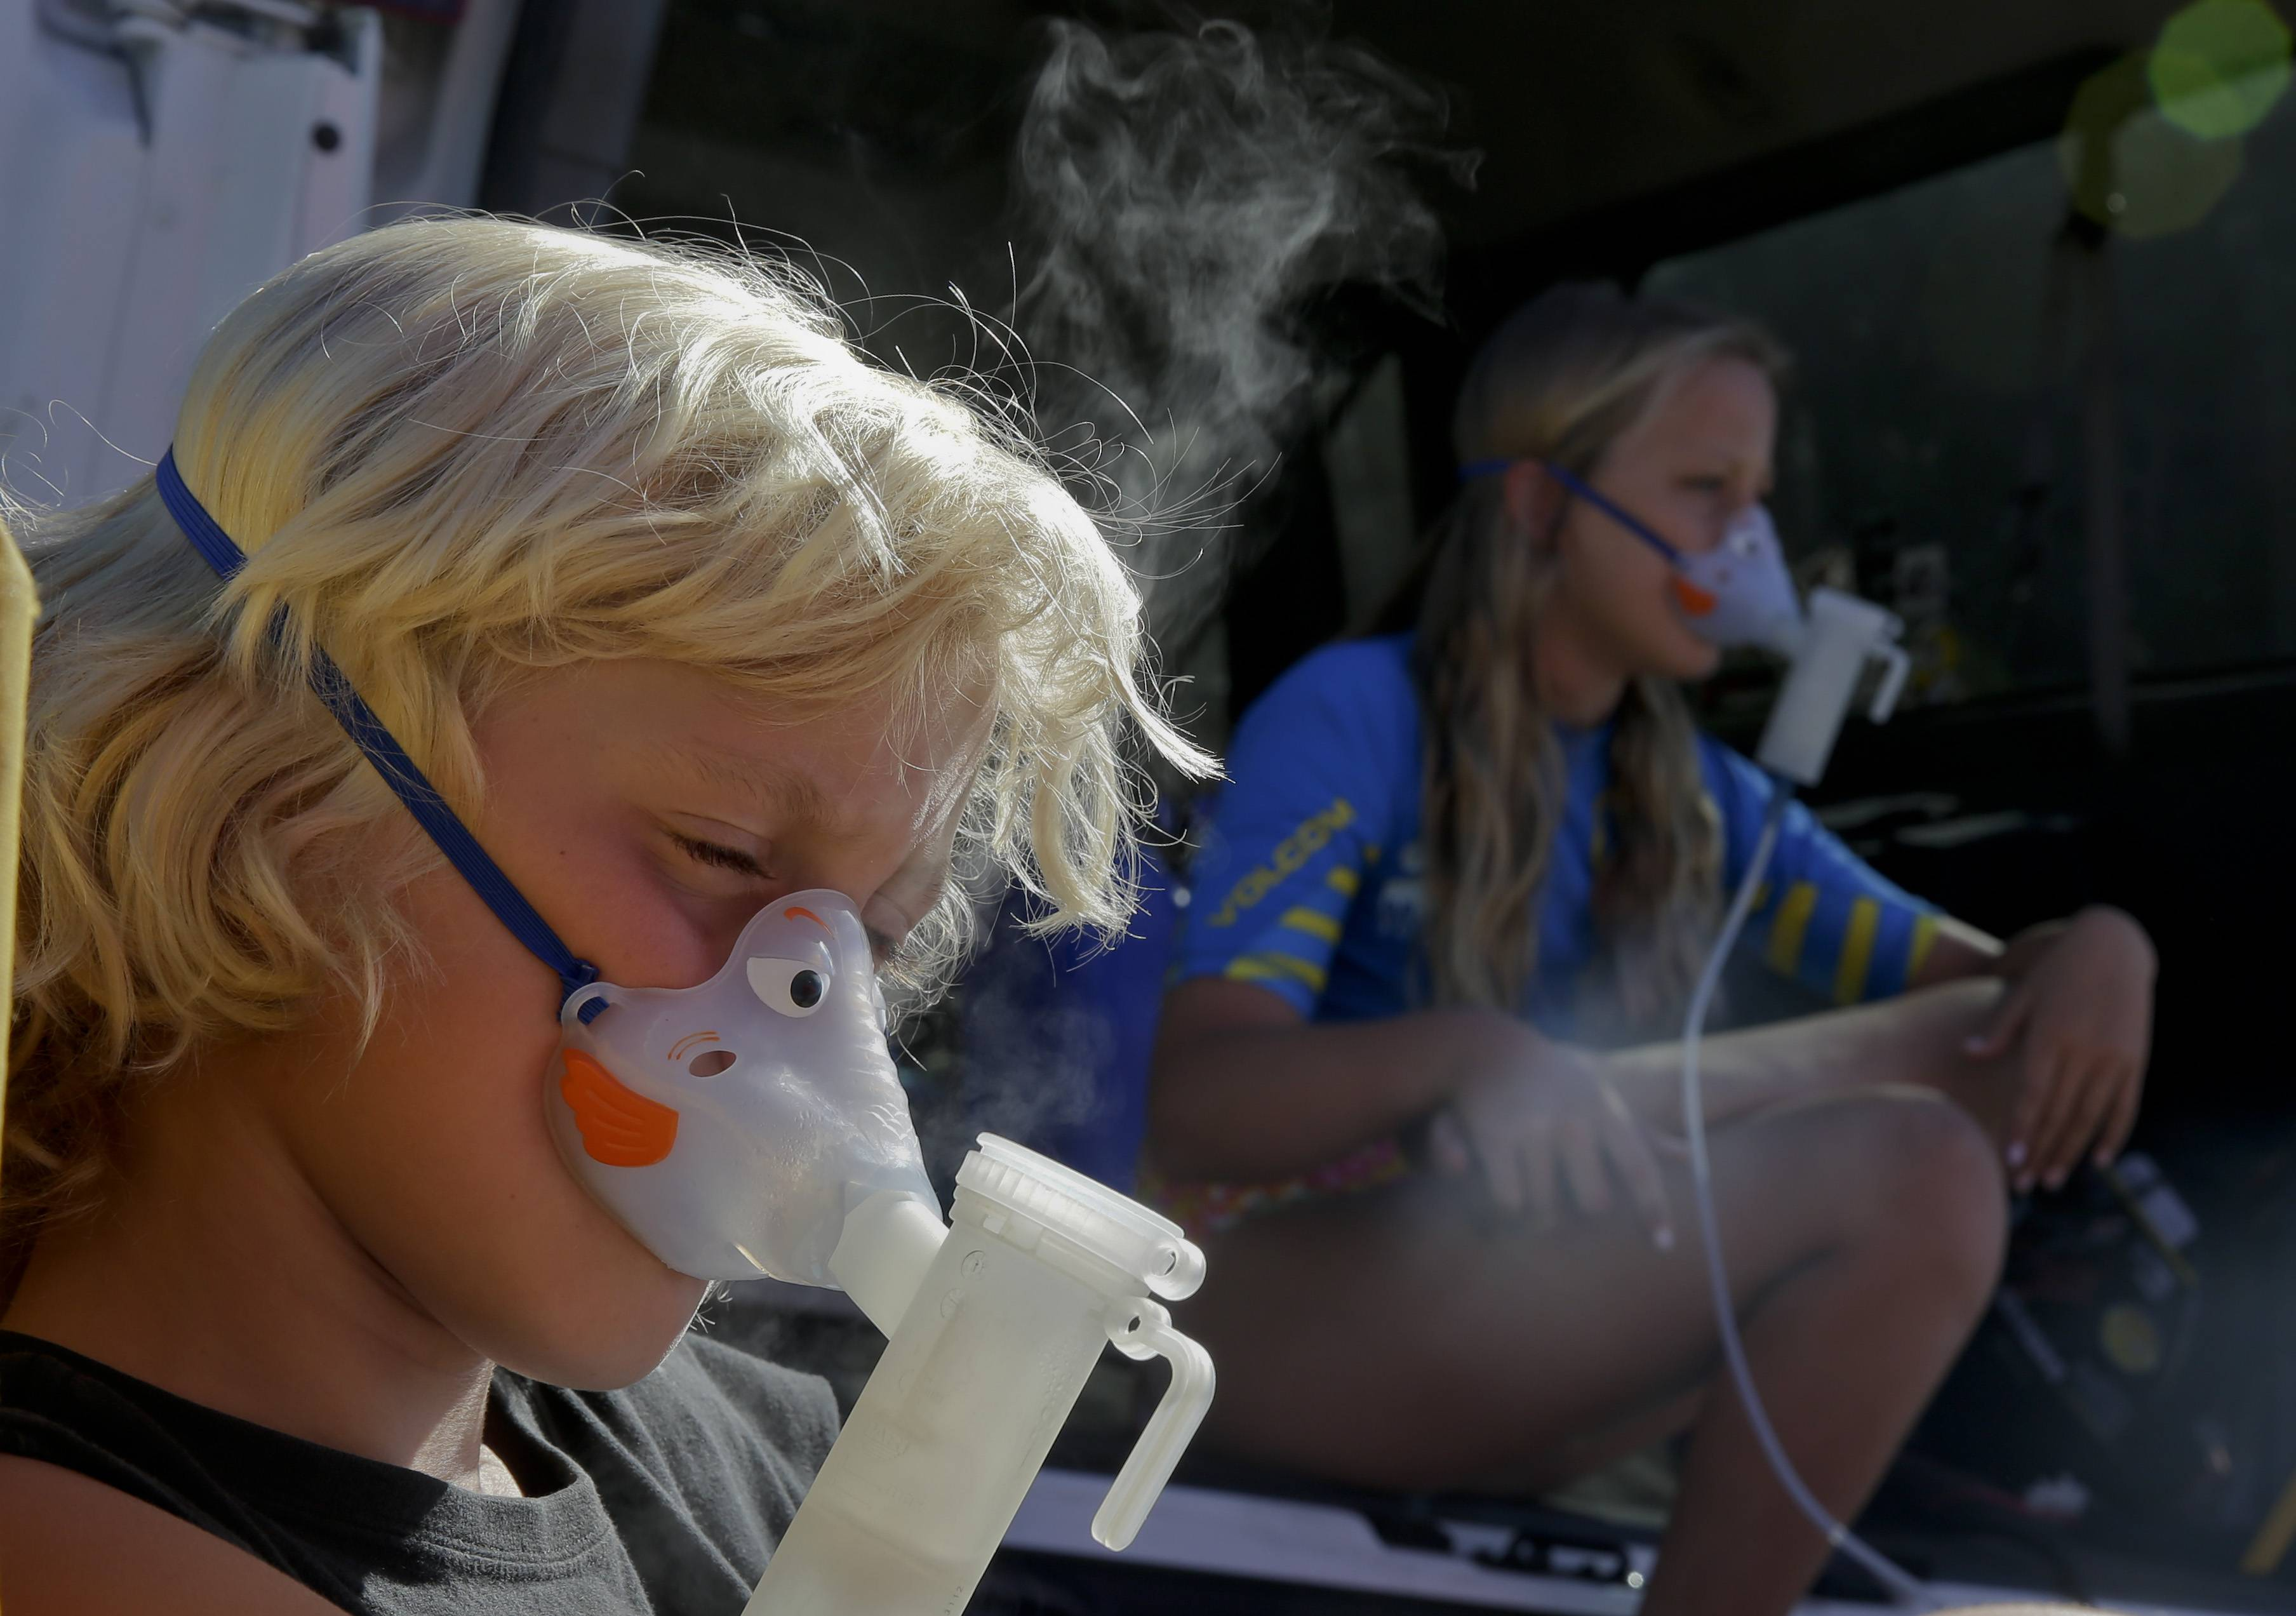 In this July 24, 2014 photo, from left, 10-year-old siblings Michael Montelone, left, and Brooke Montelone, do breathing treatments before heading into the surf in San Clemente, Calif. The children are part of a growing number of people with cystic fibrosis who are taking advantage of the health benefits that come with surfing.